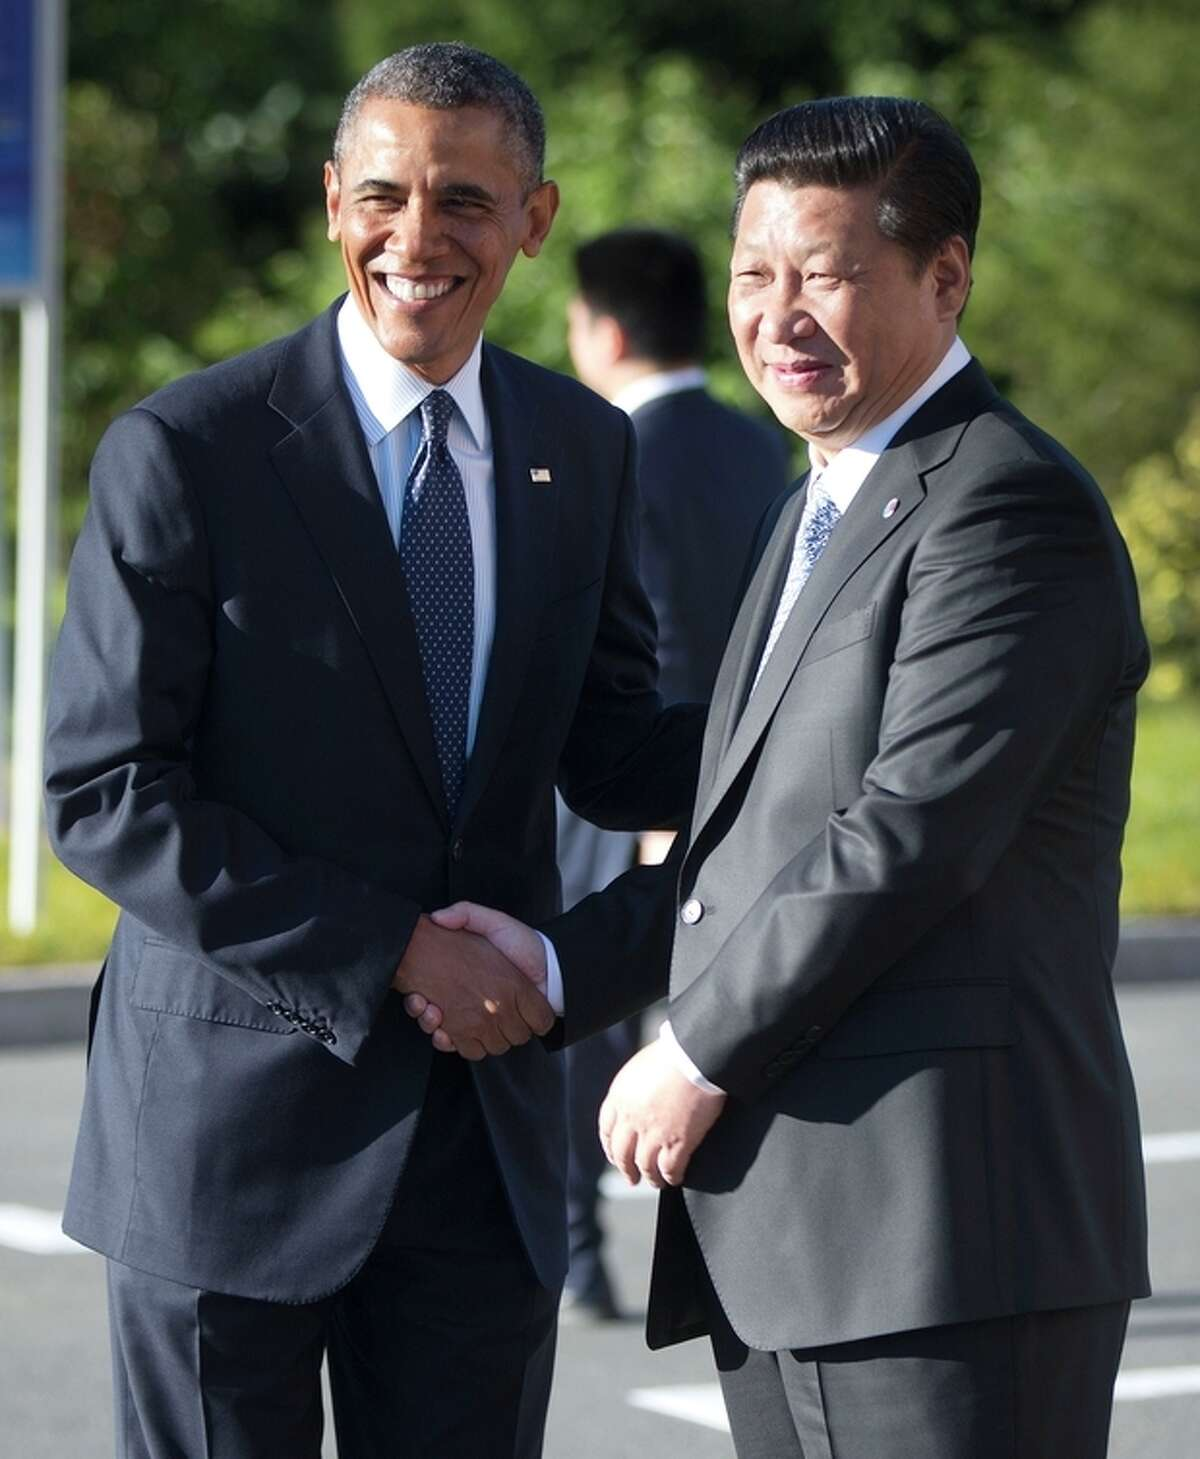 U.S. President Barack Obama, left, and China's President Xi Jinping, right, shake hands before their bilateral meeting at the G20 Summit, Friday, Sept. 6, 2013 in St. Petersburg, Russia. (AP Photo/Pablo Martinez Monsivais)